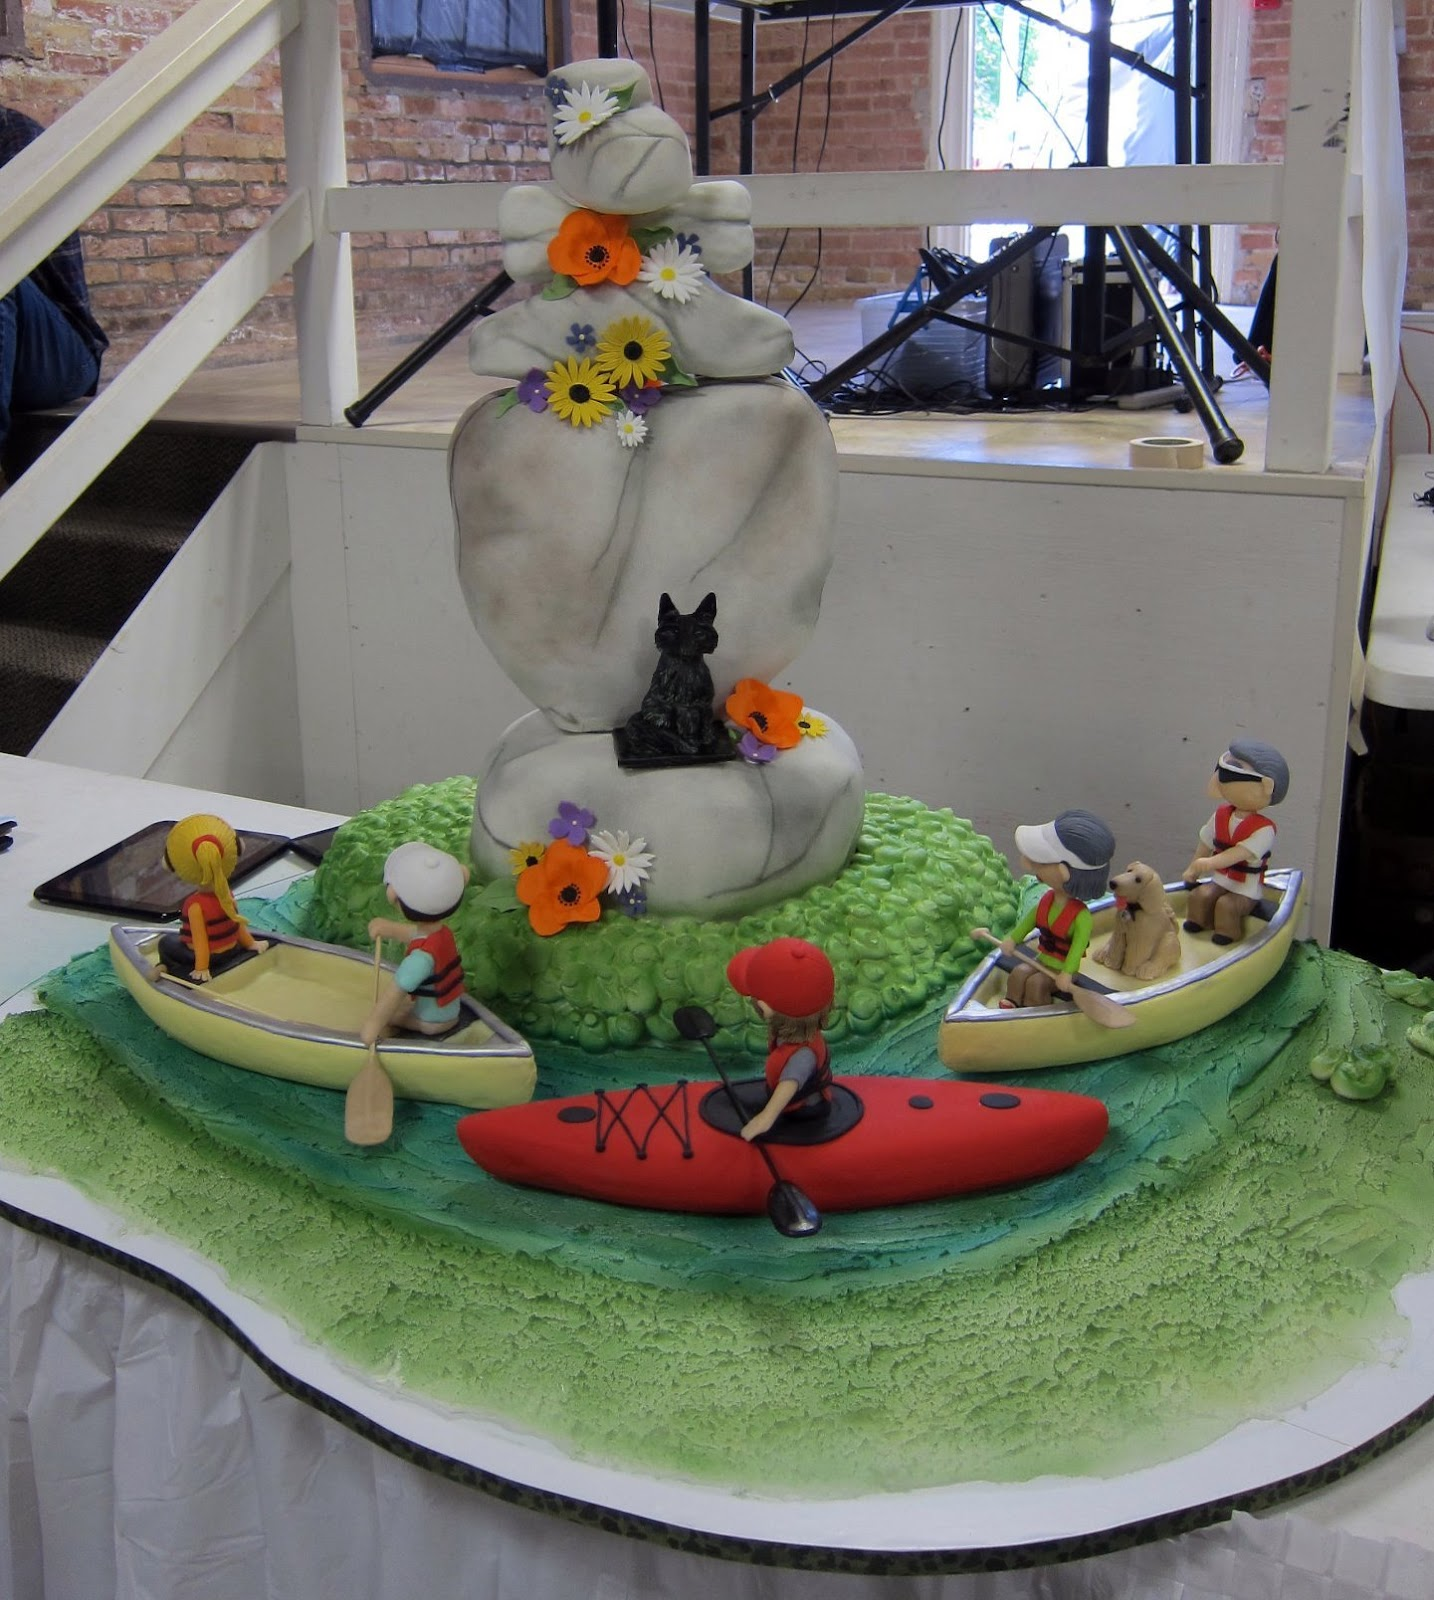 Cake Decorating Competition Show : Cakegirl on the Run: NOARDA s